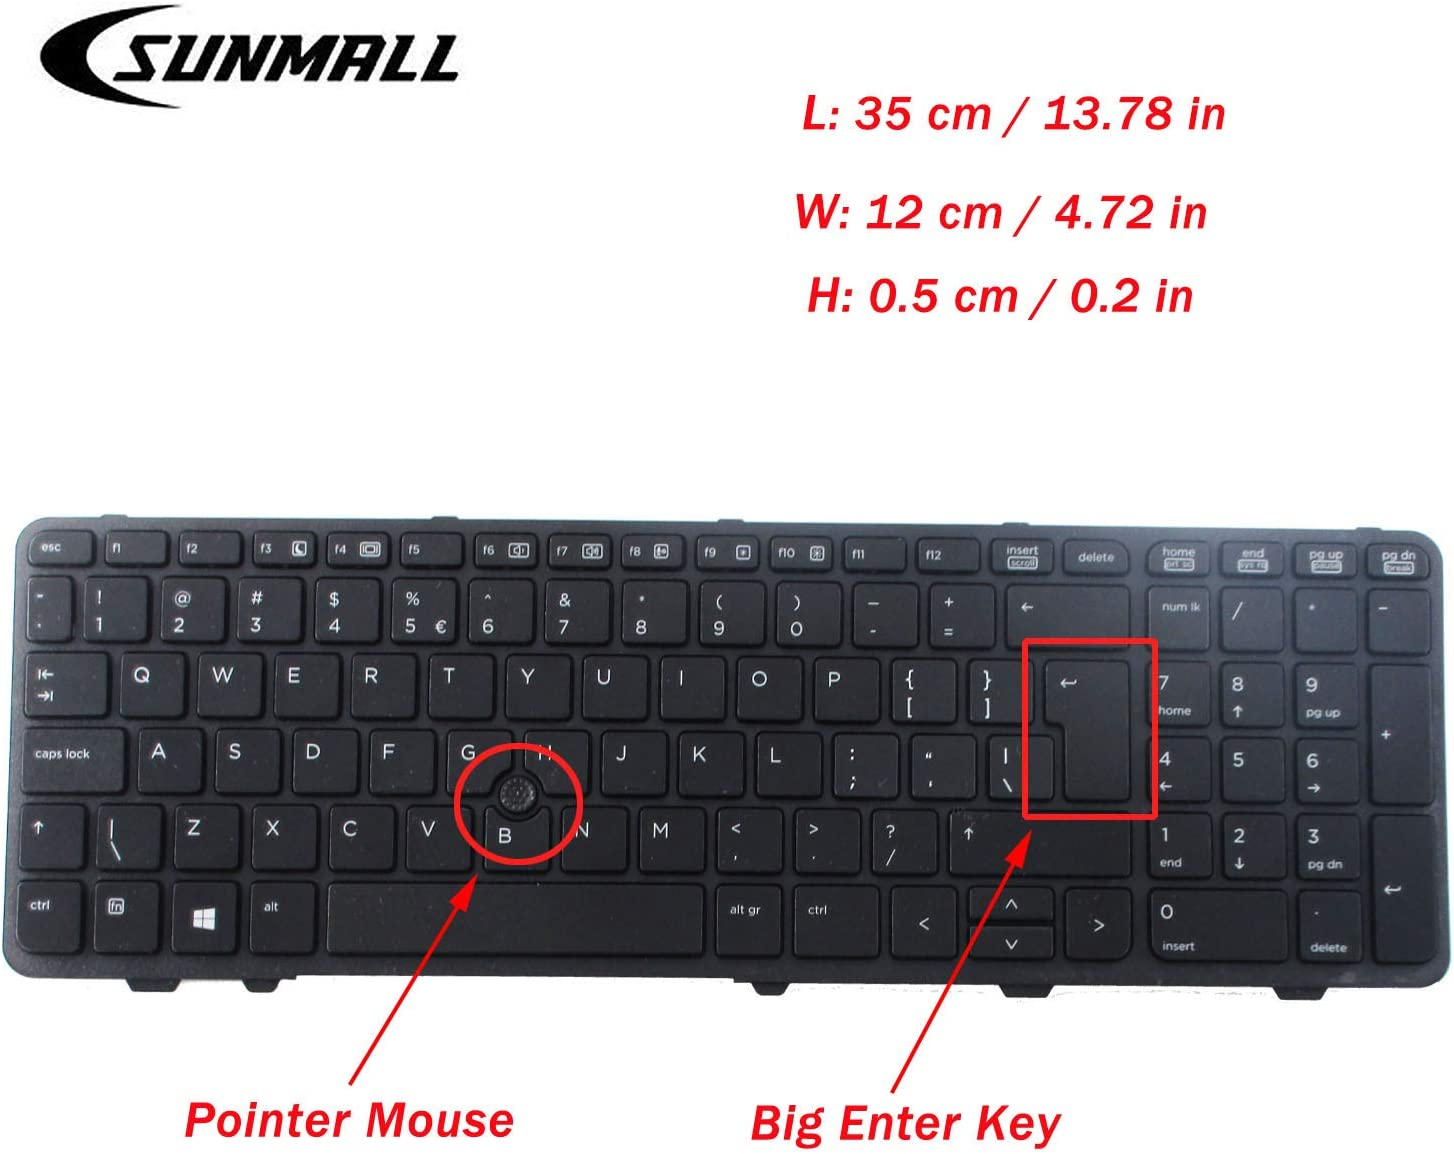 SUNMALL Keyboard Replacement with (Point Mouse) and (Big Enter Key) Compatible with HP Probook 650 g1 and 655 g1 Laptop